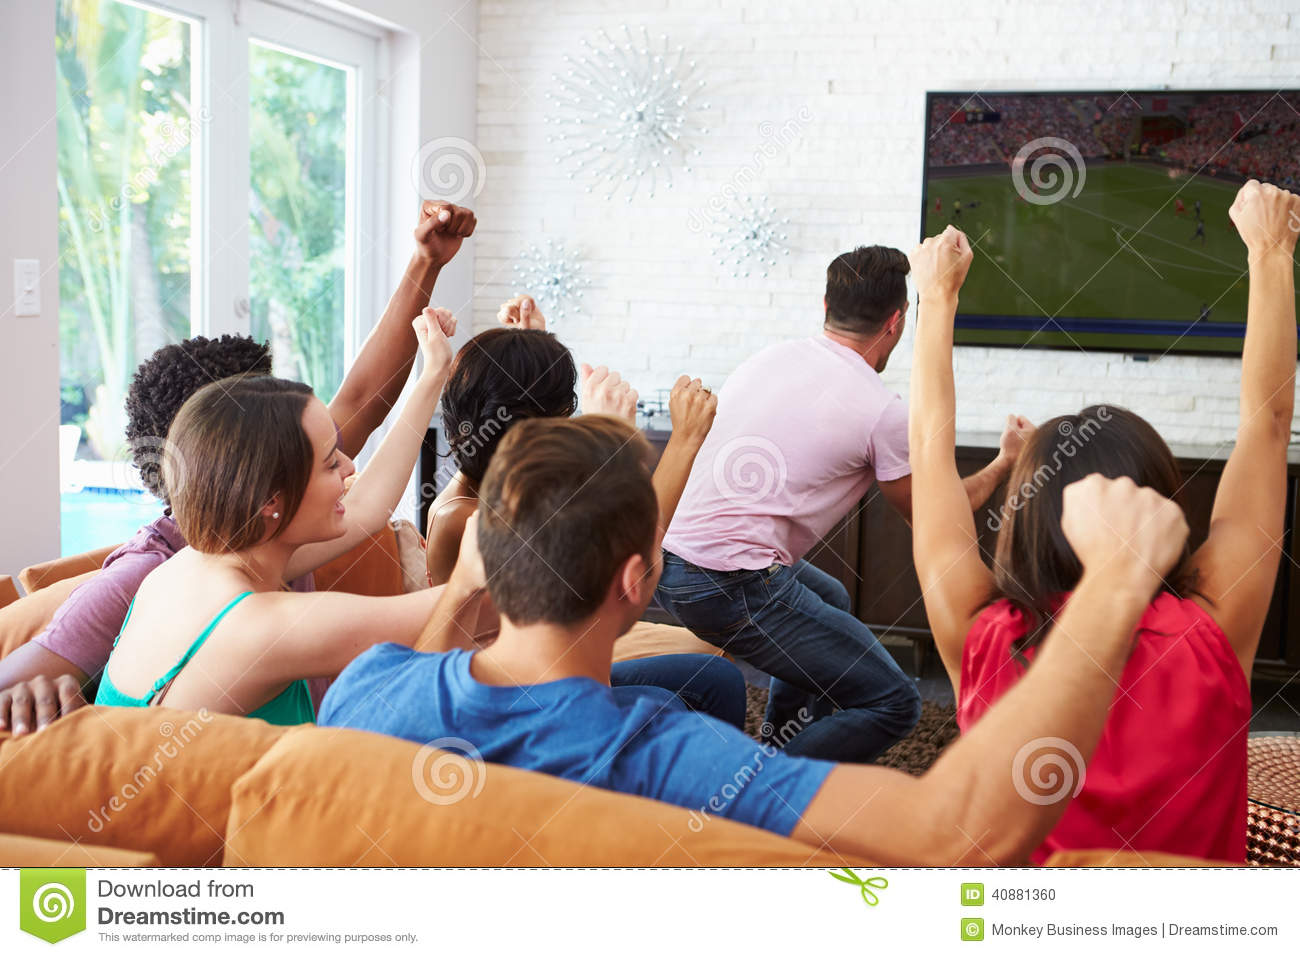 group-friends-watching-soccer-celebrating-goal-arms-air-cheering-40881360.jpg